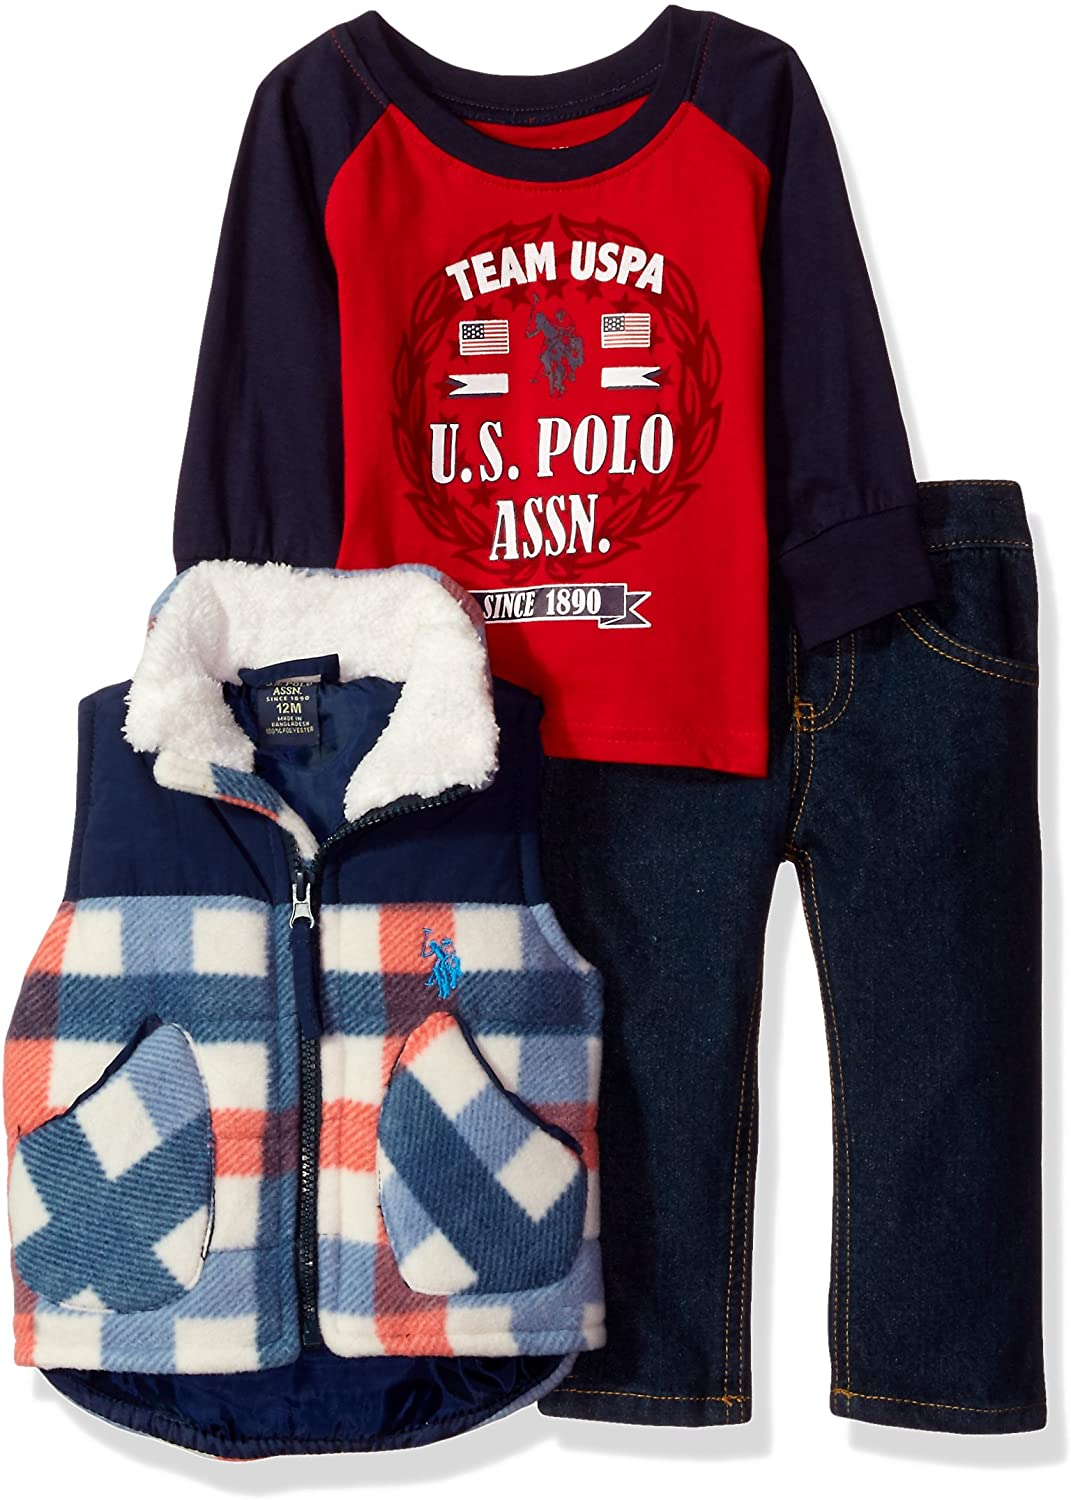 U.S. Polo Assn. Baby Boys' Vest, T-Shirt and Pant Set